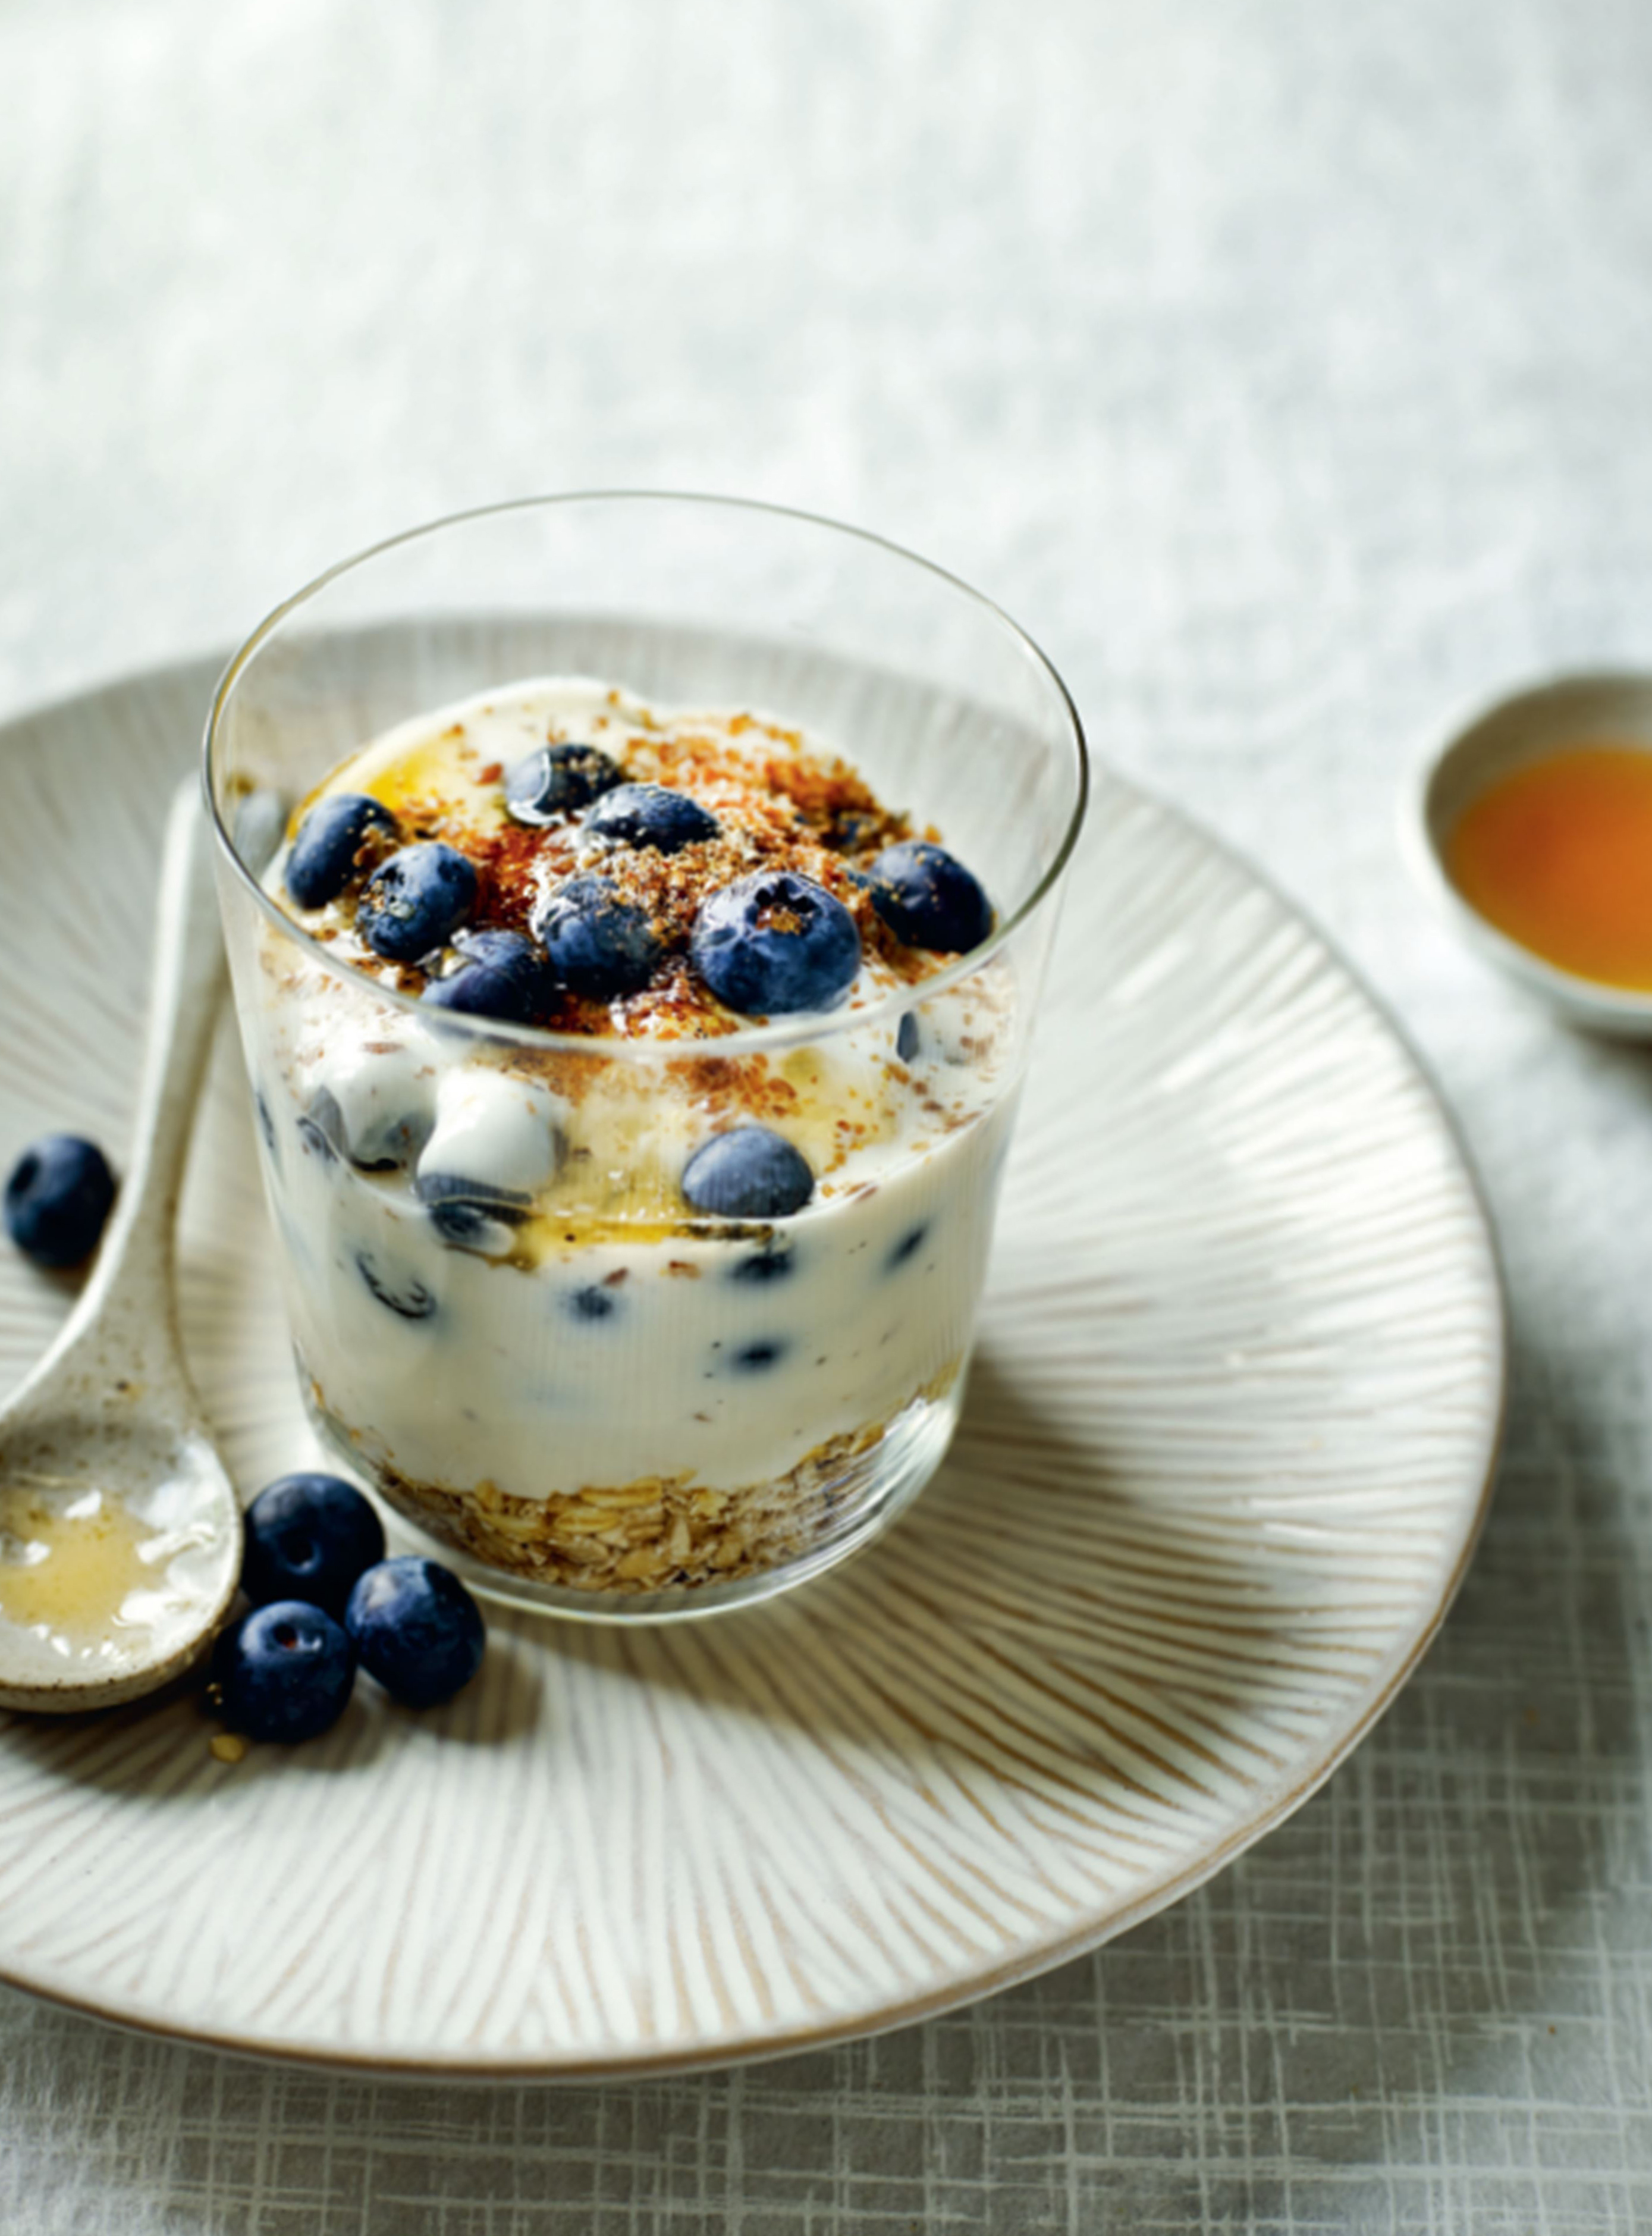 Cardamom spiced yogurt parfait